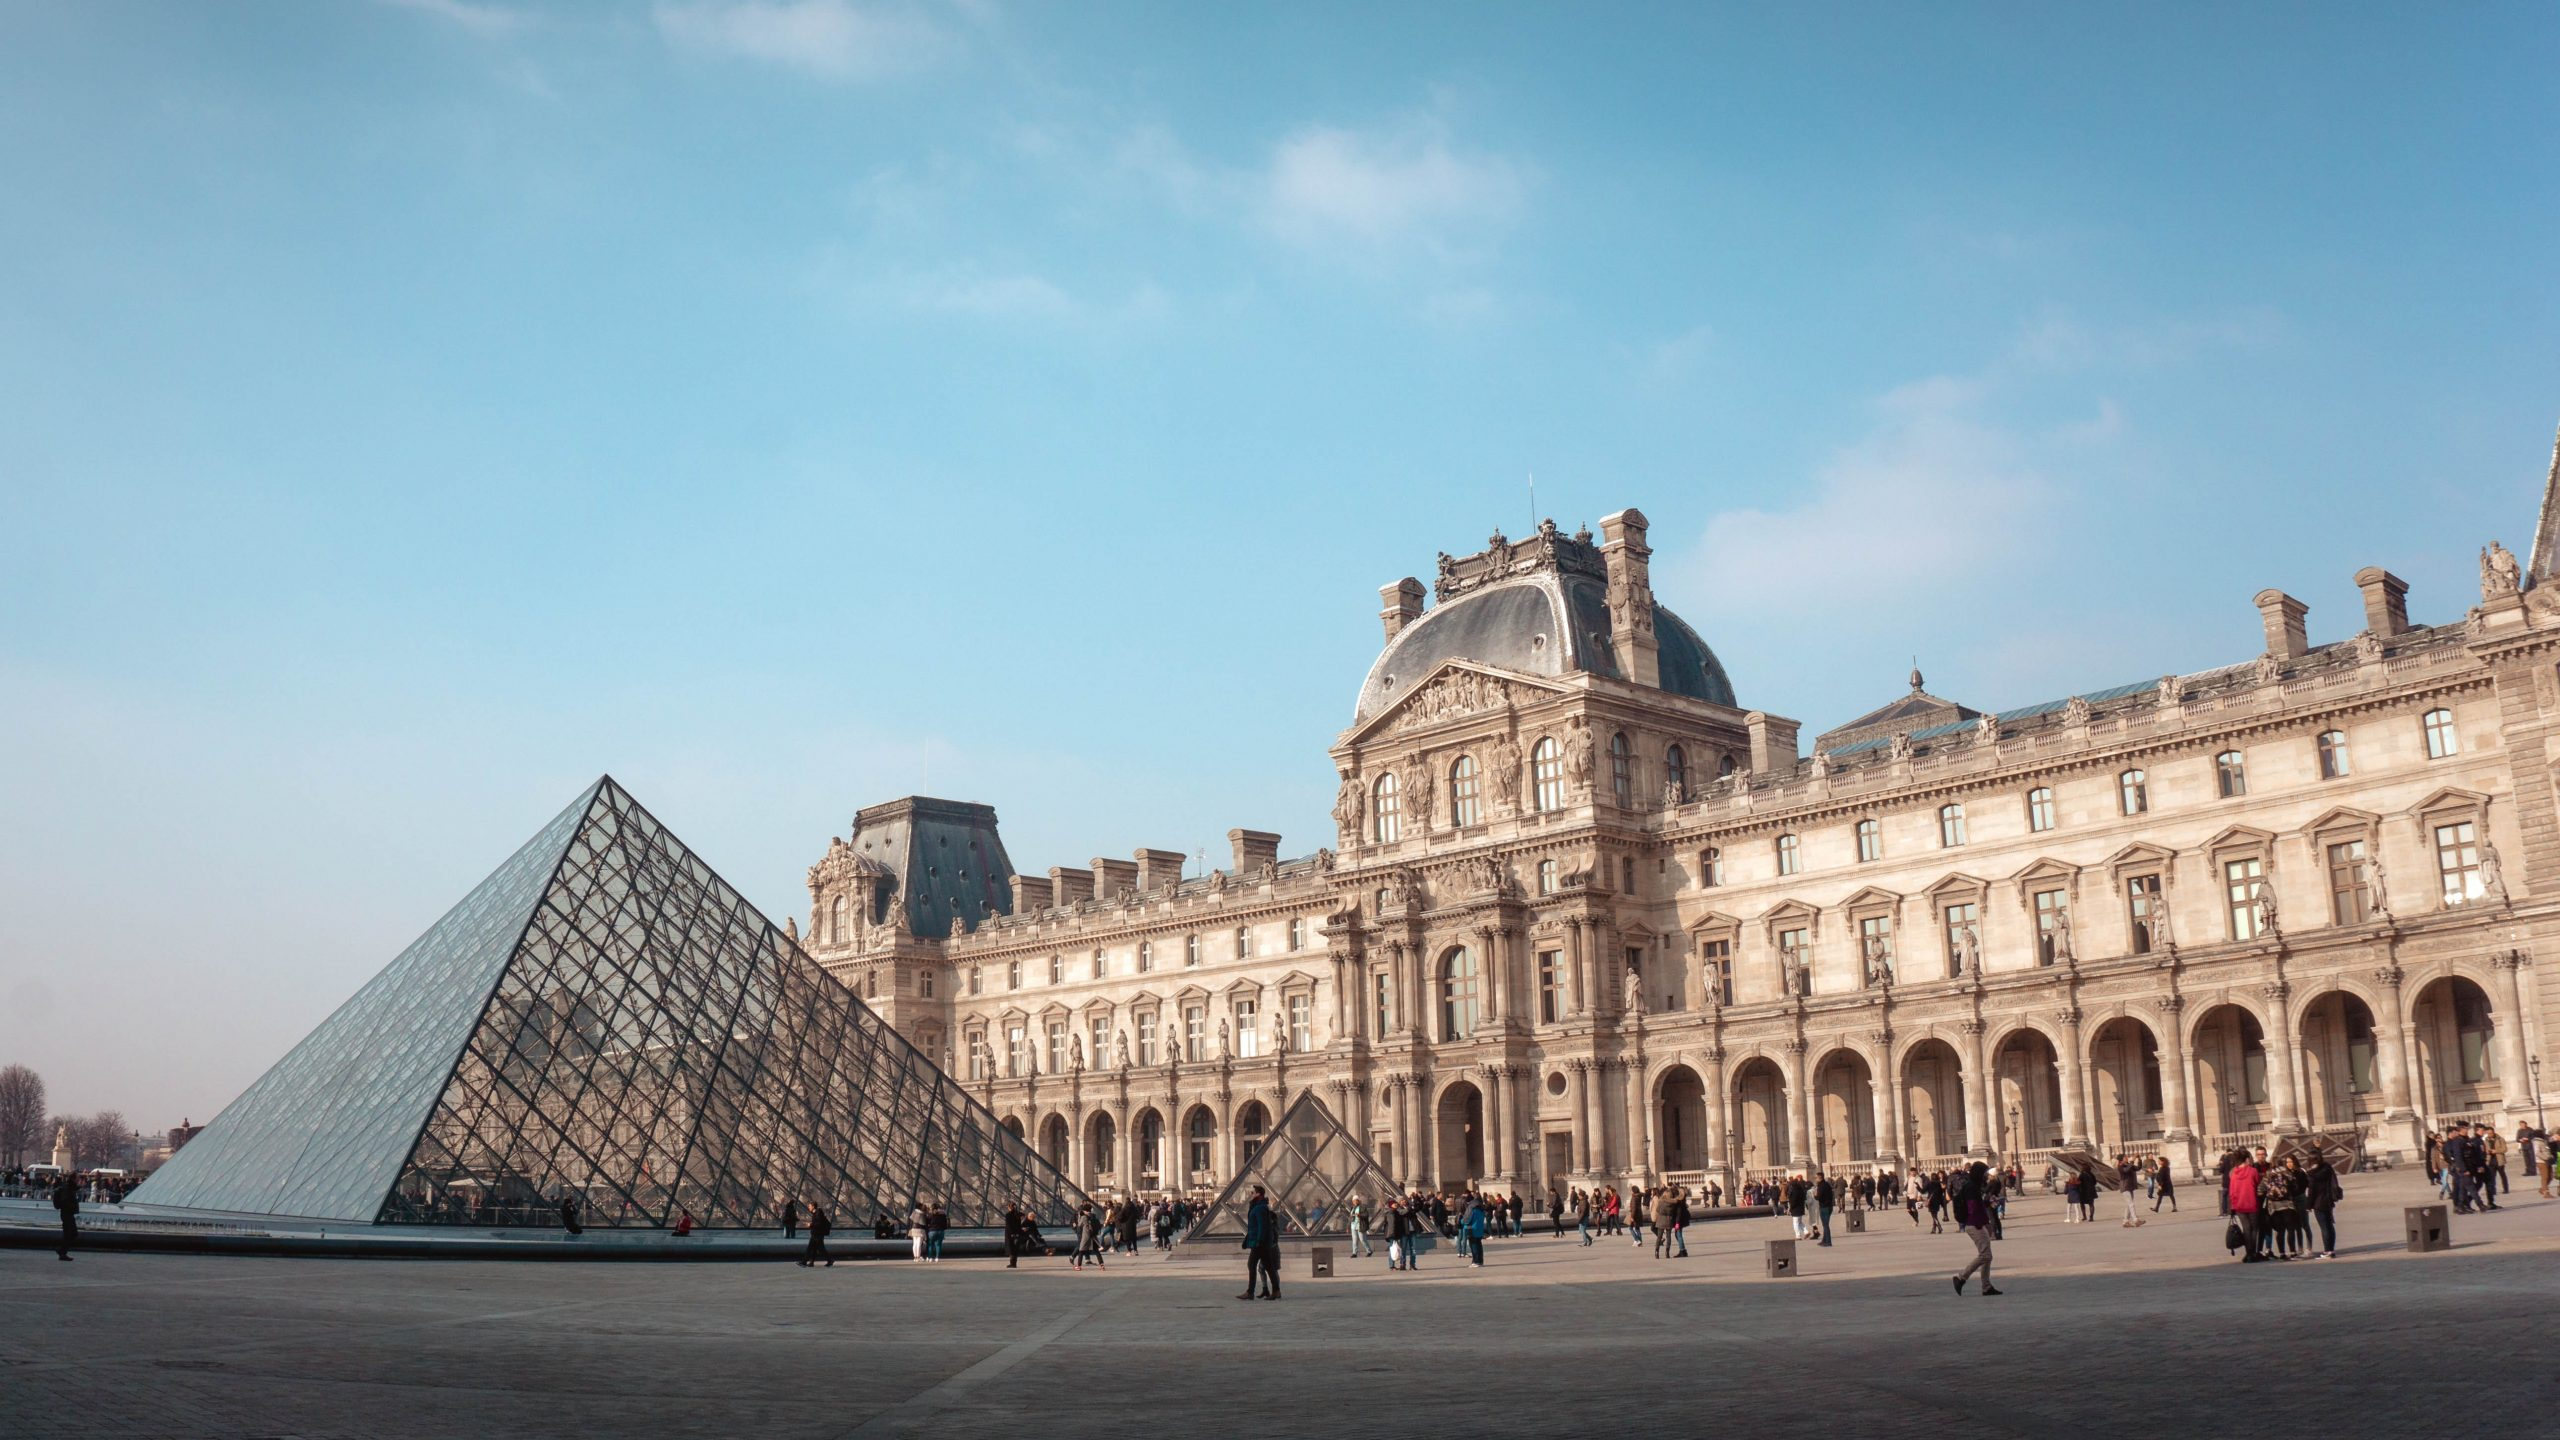 A group of people in front of Louvre